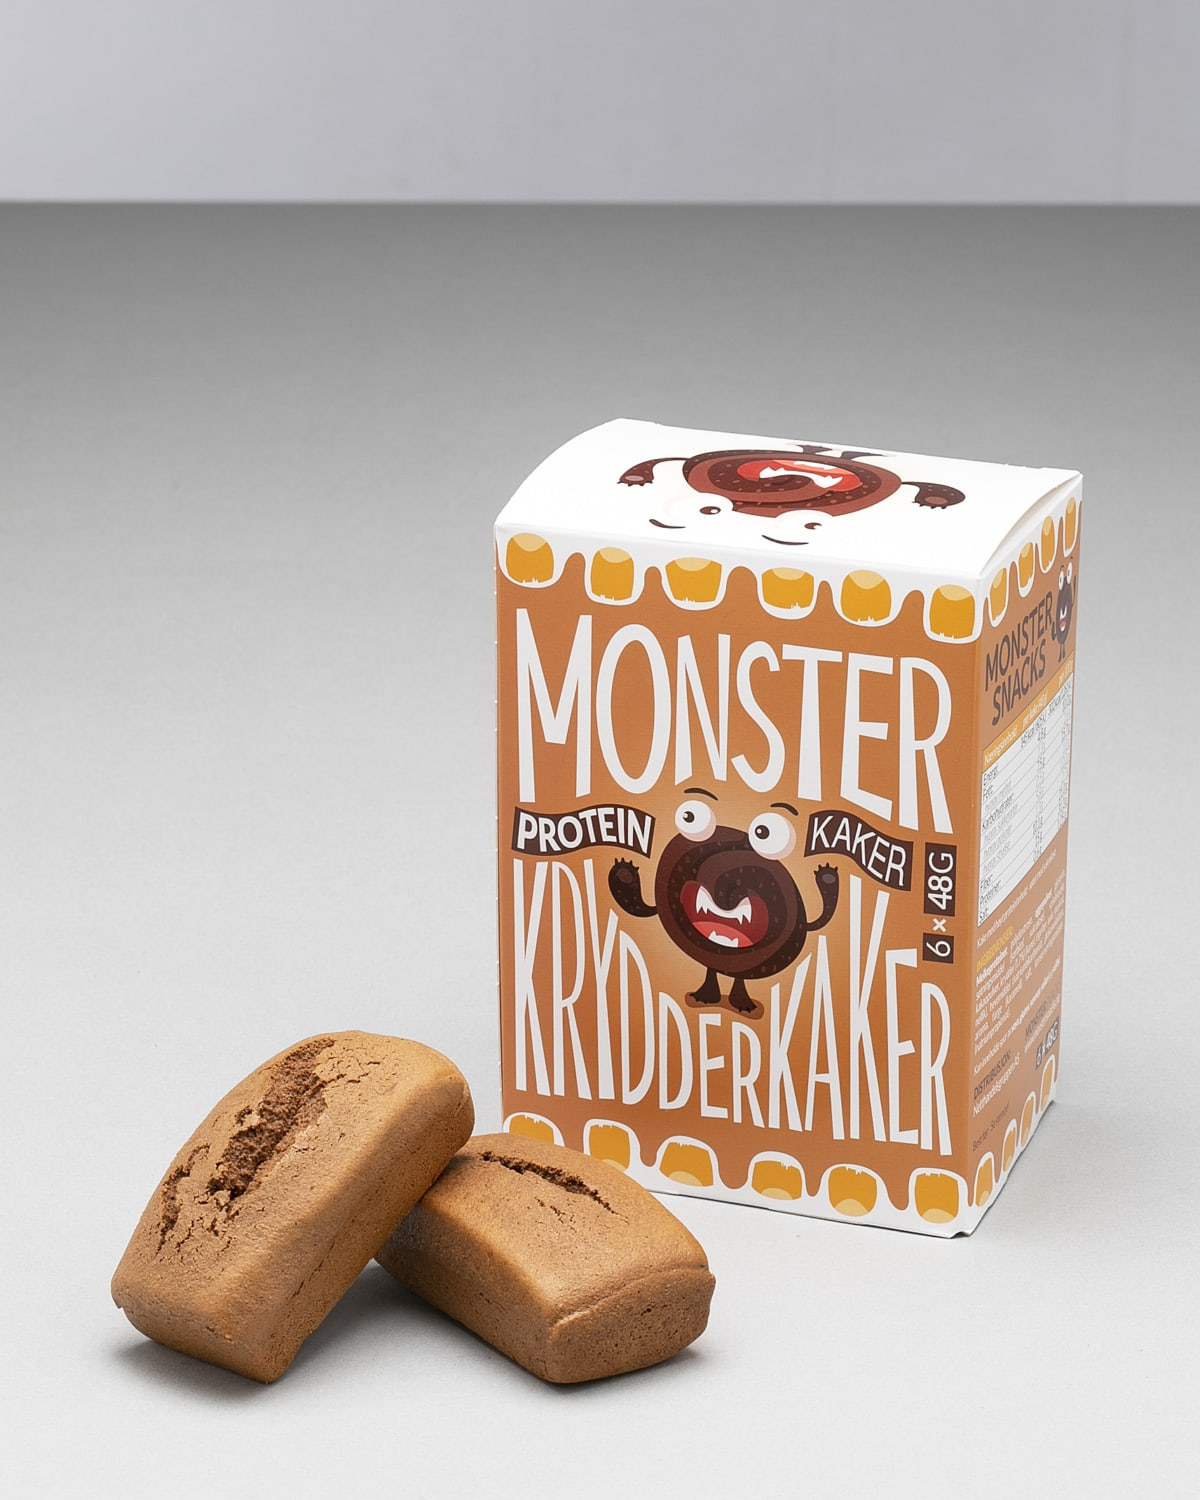 Monster Krydderkaker copy